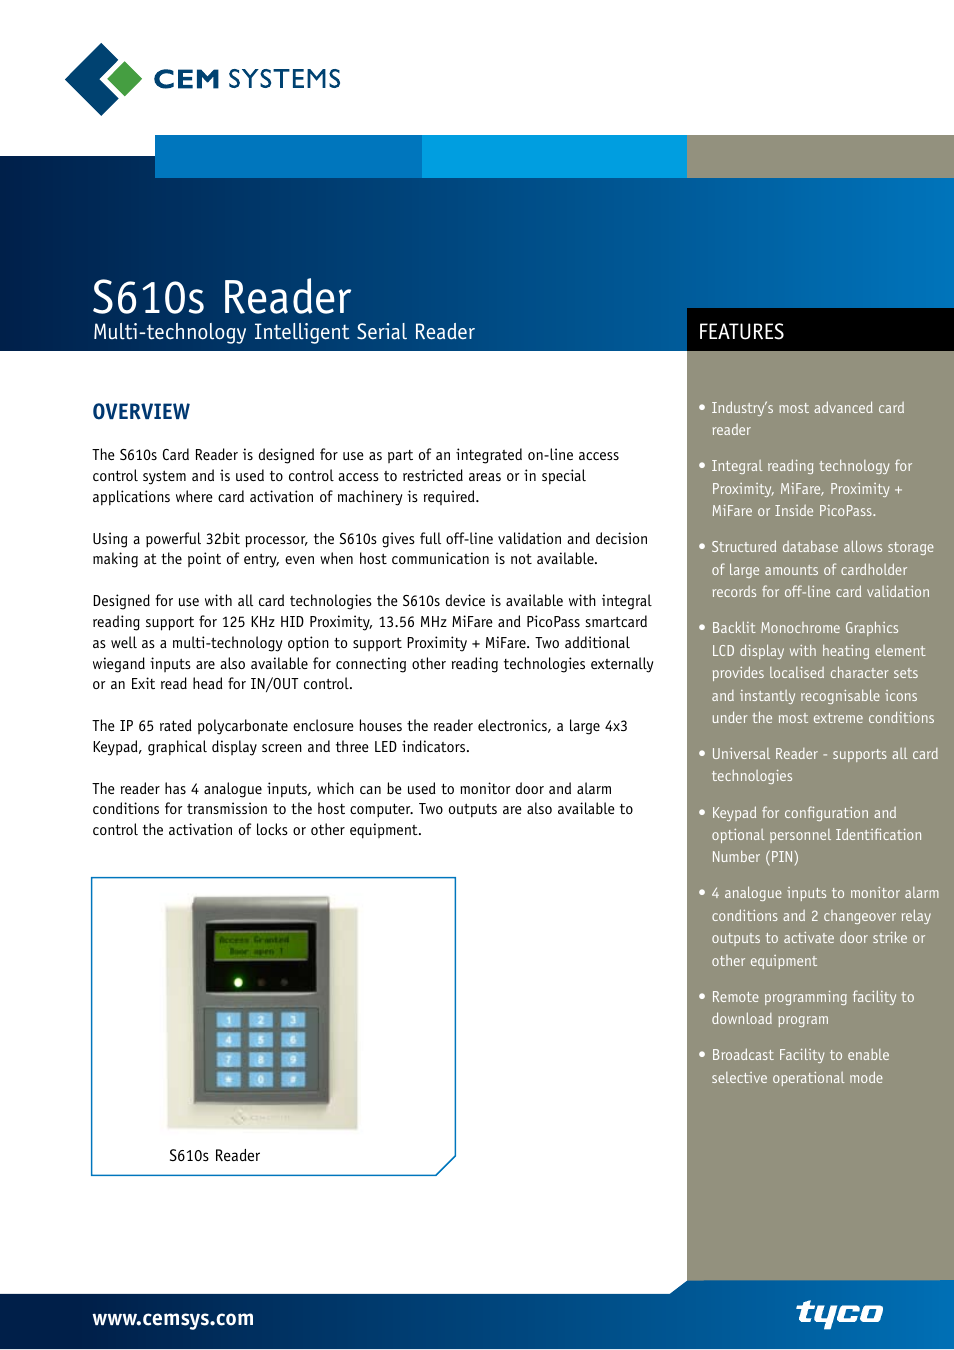 Tyco Card Reader S610s User Manual | 2 pages Tyco Door Access Control Wiring Diagram on access control door opener diagram, door frame diagram, door schematic, access control system diagram, door hinge diagram, door access controller, access control schematic diagram, door control system block diagram, door access readers, door strike intercom access control diagram, double door access control diagram, magnetic card reader diagram, entry control point diagram, door installation diagram, door access systems, door access control tools, single door access control diagram, door access control riser diagram, door access control cable, ring network topology diagram,